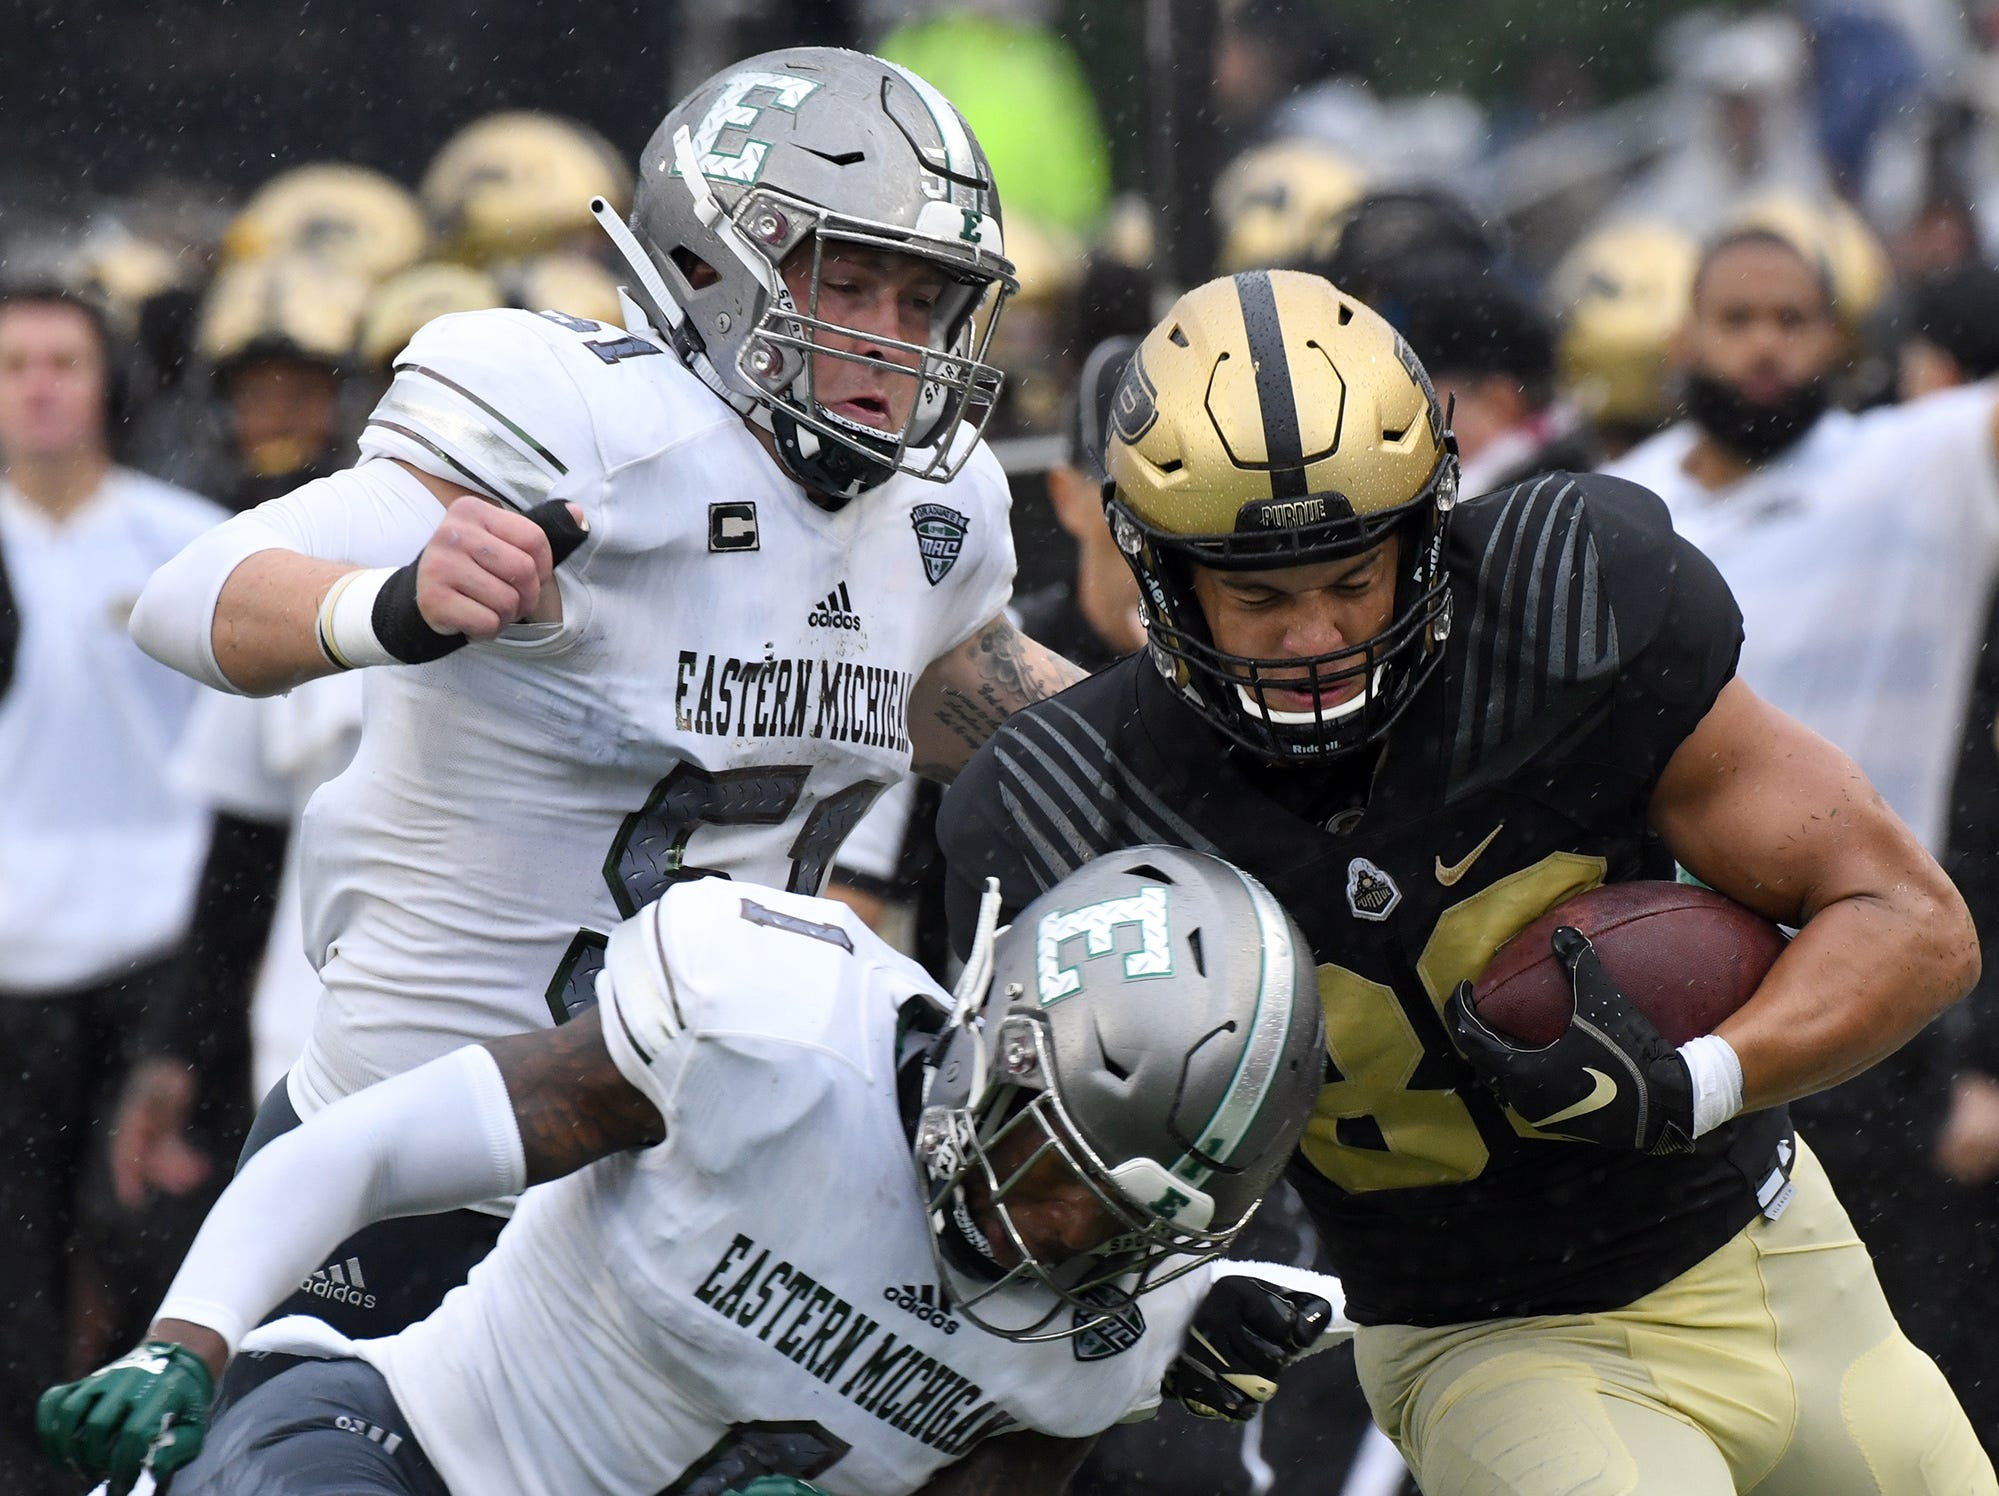 Purdue's Cole Herdman runs for yardage against Eastern Michigan in West Lafayette on September 8, 2018. Purdue lost 20-19.